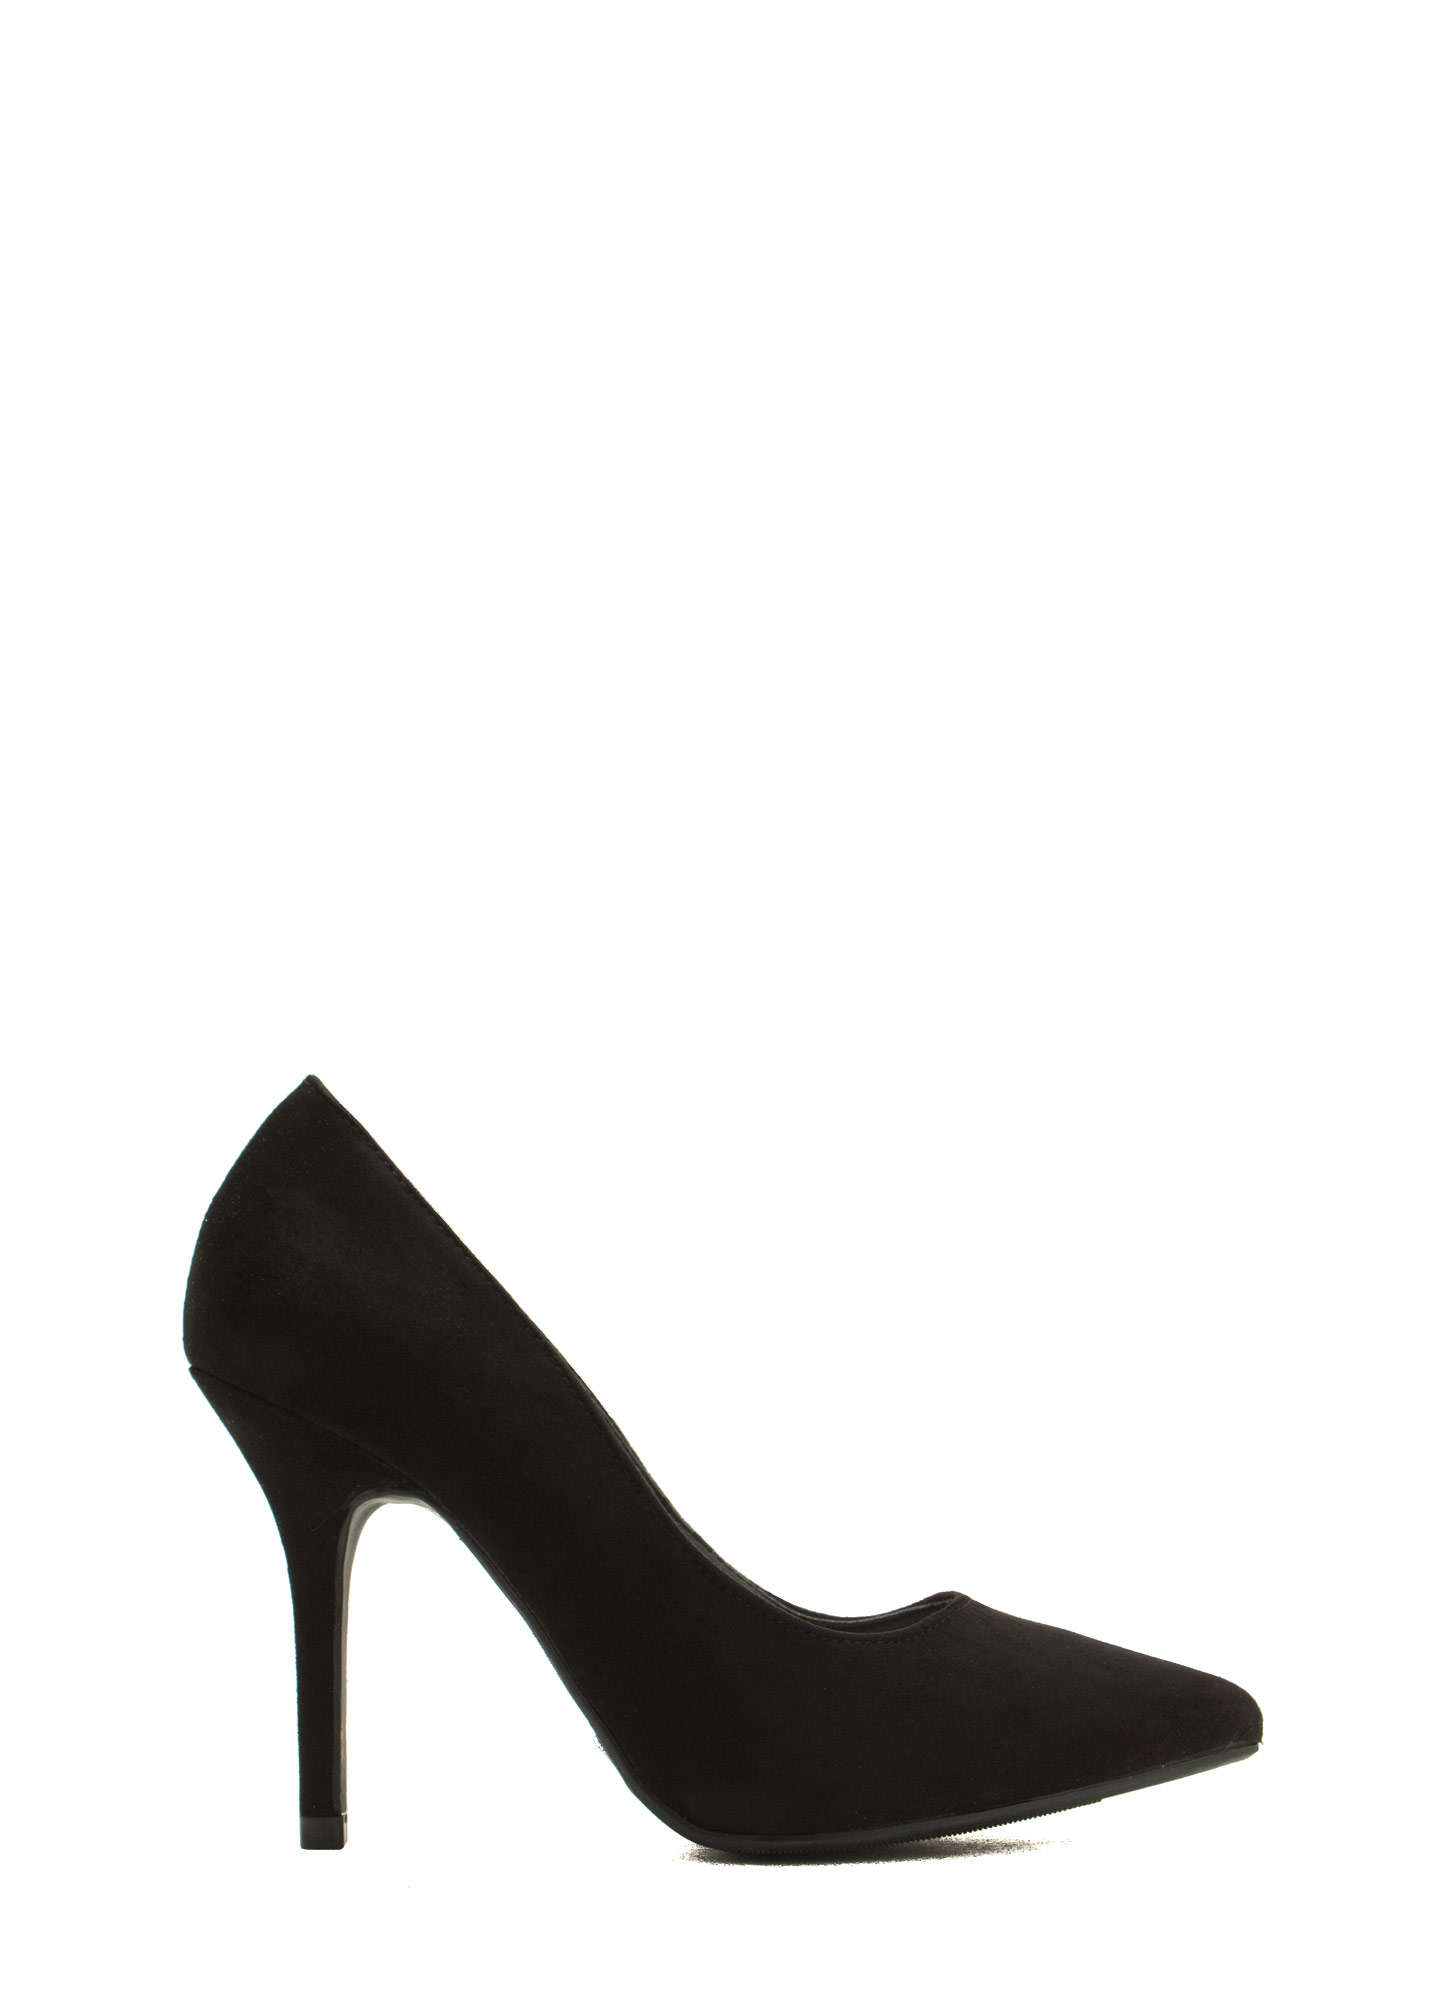 To The Point Faux Suede Heels BLACK